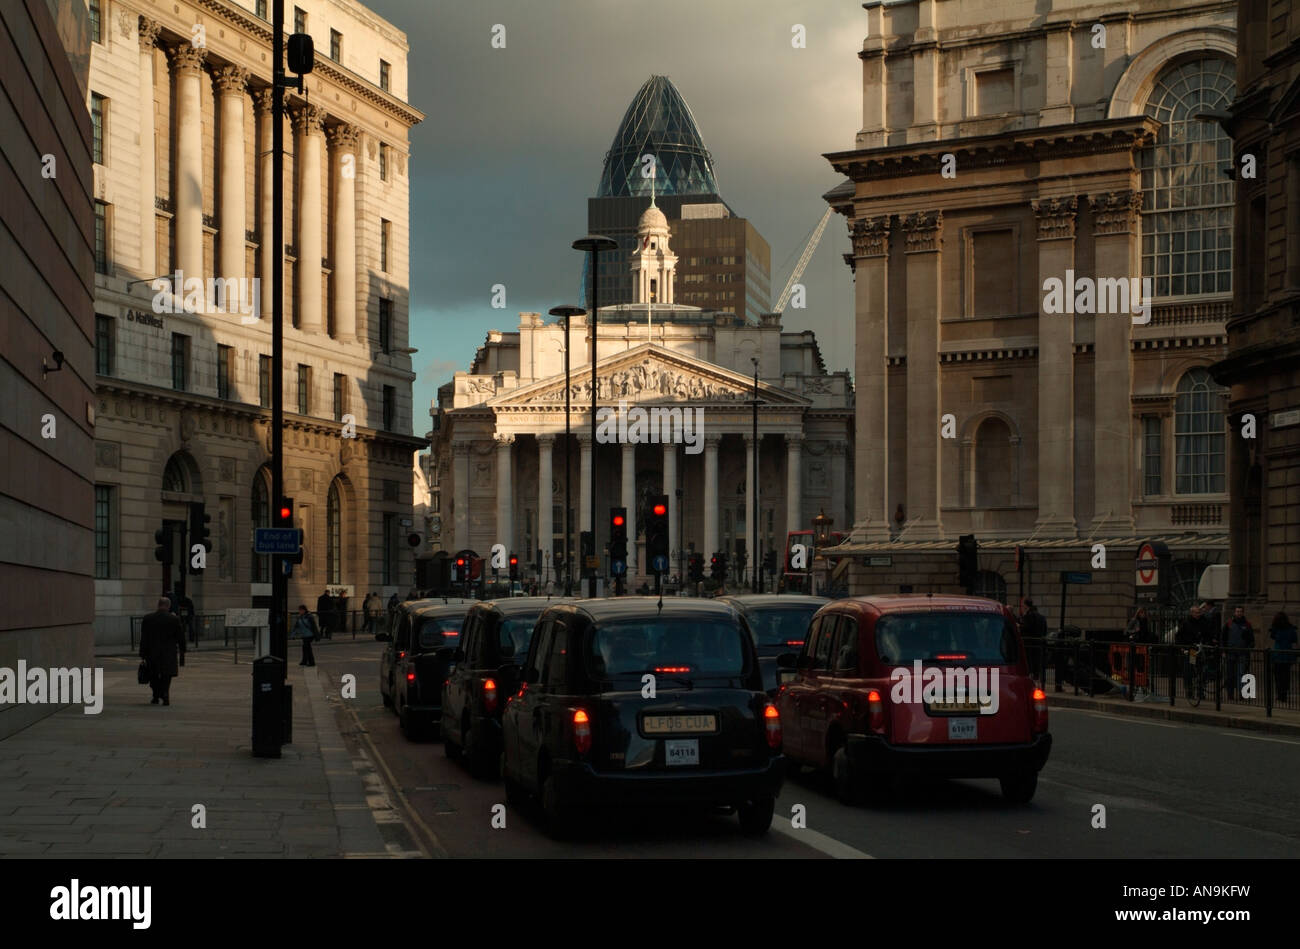 The Royal Exchange from the east end of Queen Victoria Street, London - Stock Image